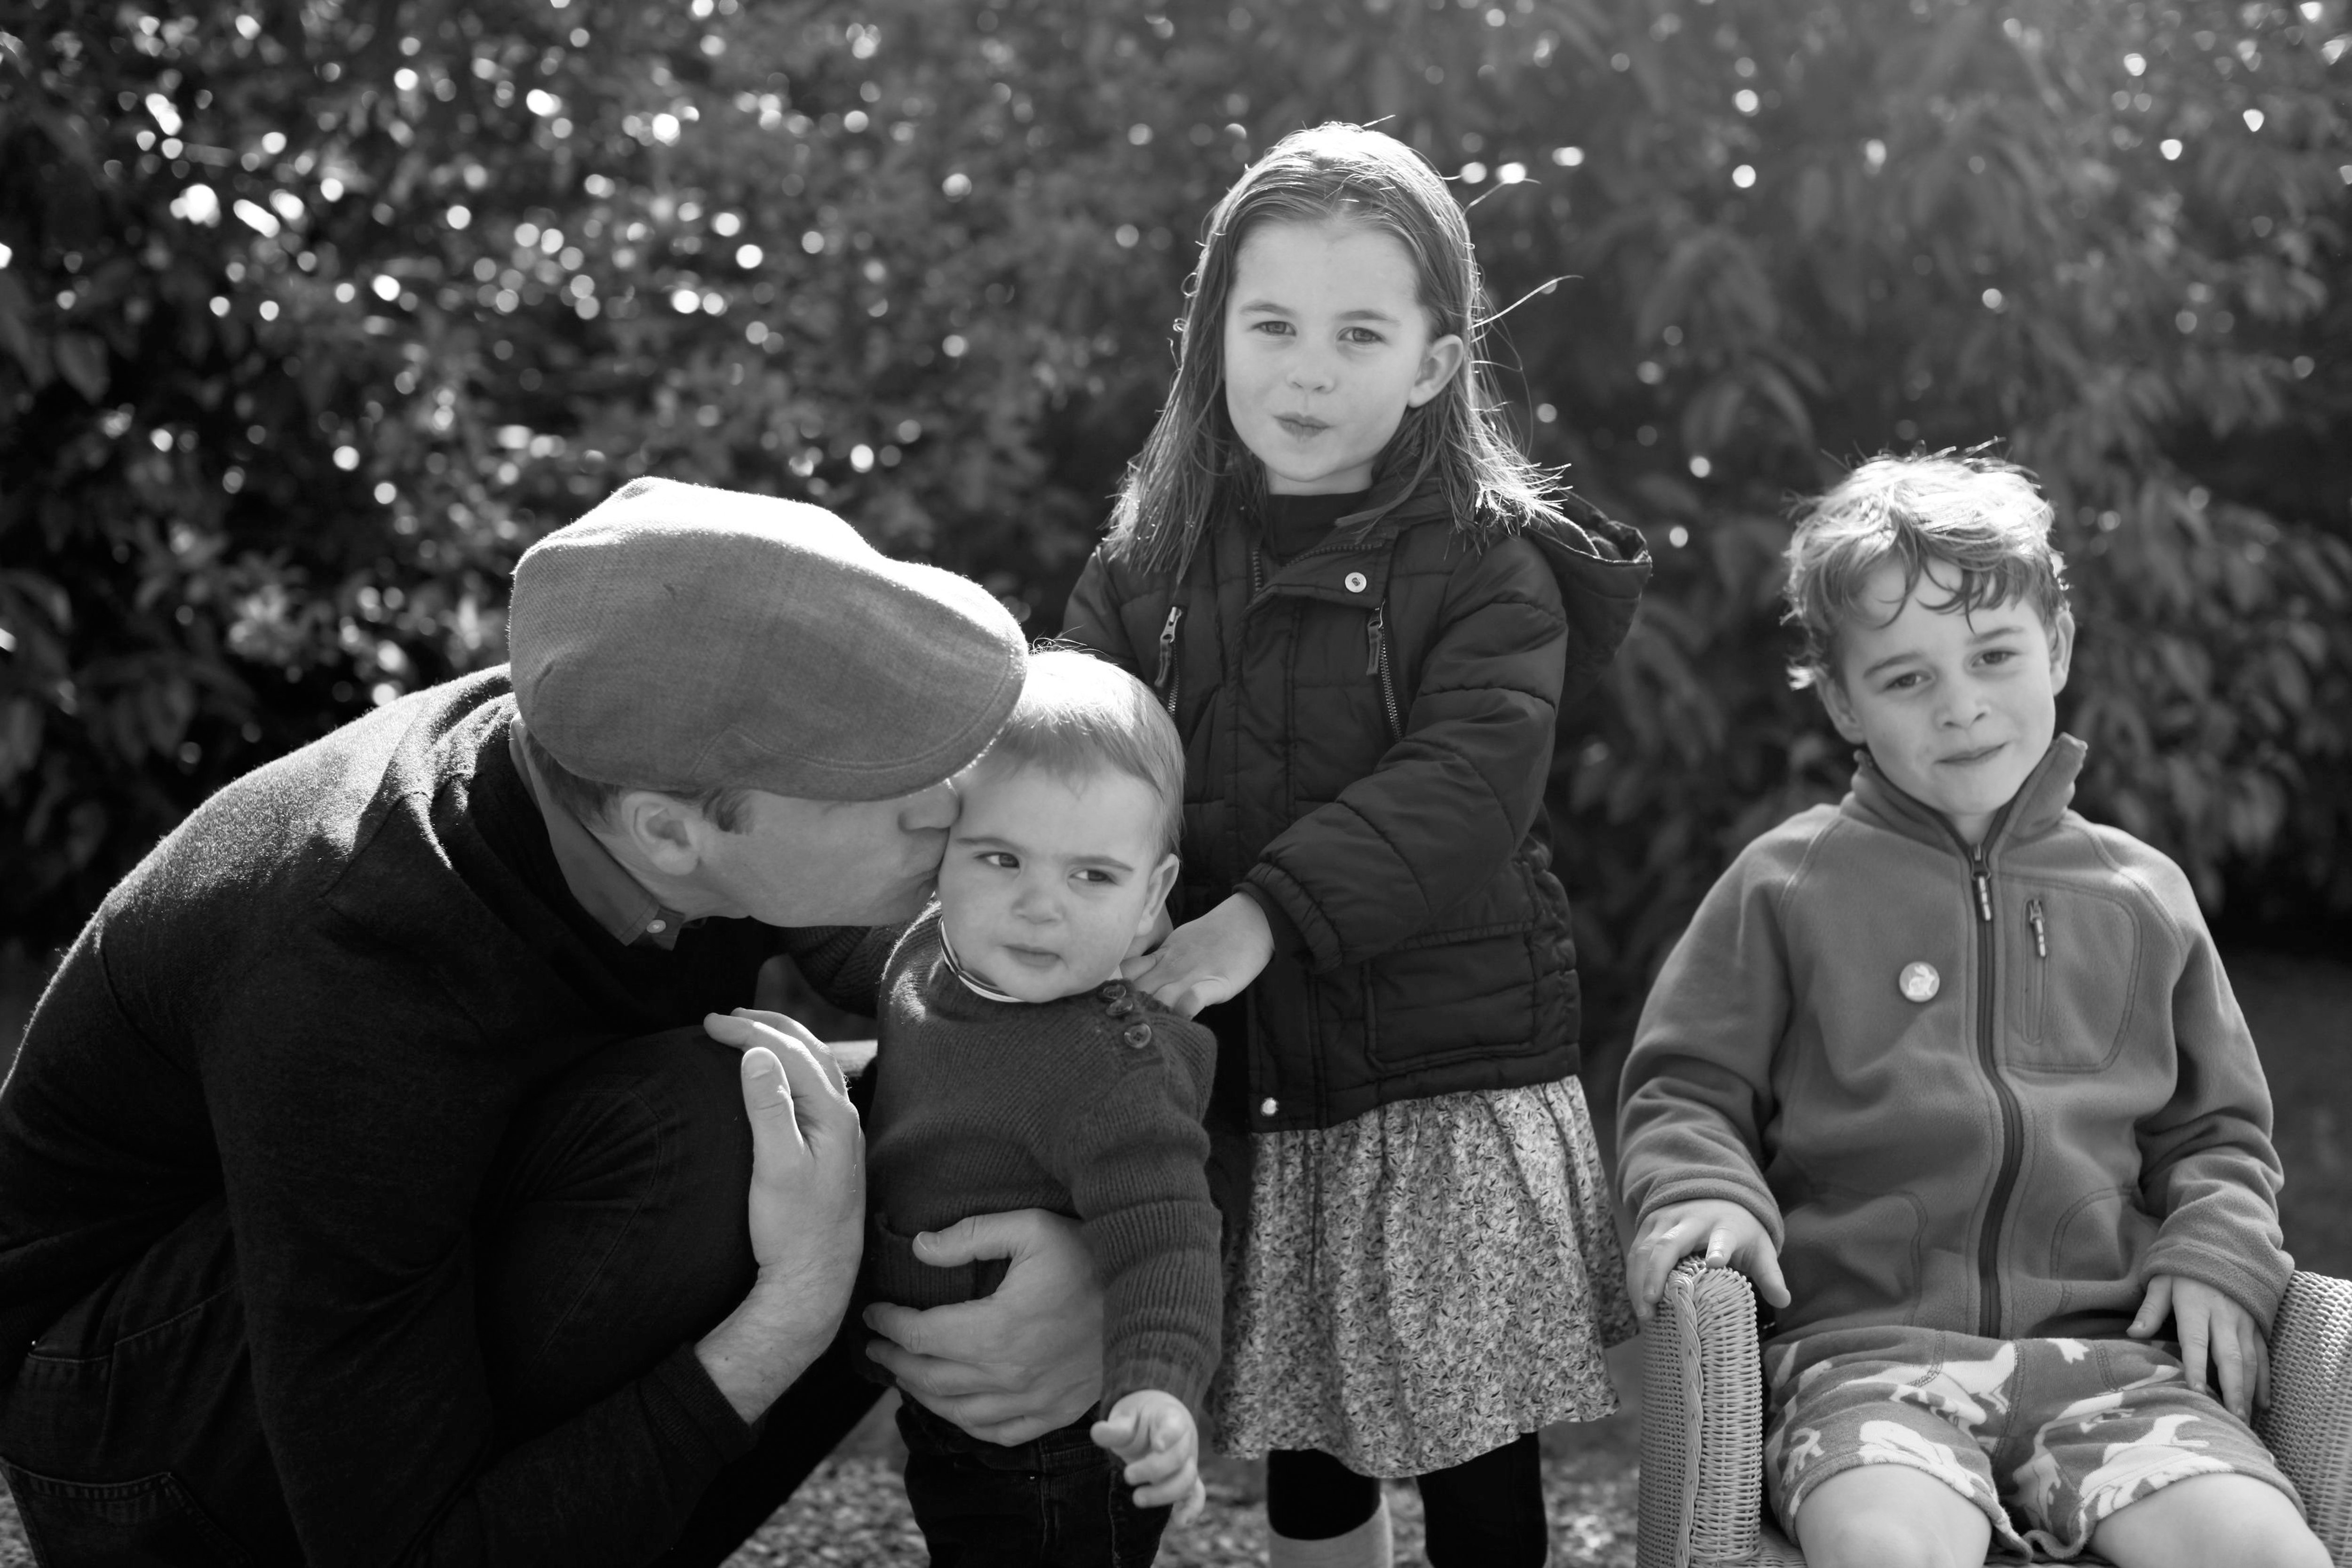 A picture taken by Kate Middleton of Prince William and their three children, Princes George, Louis, and Princess Charlotte, and released by Kensington Palace on December 25, 2019. | Source: Getty Images.